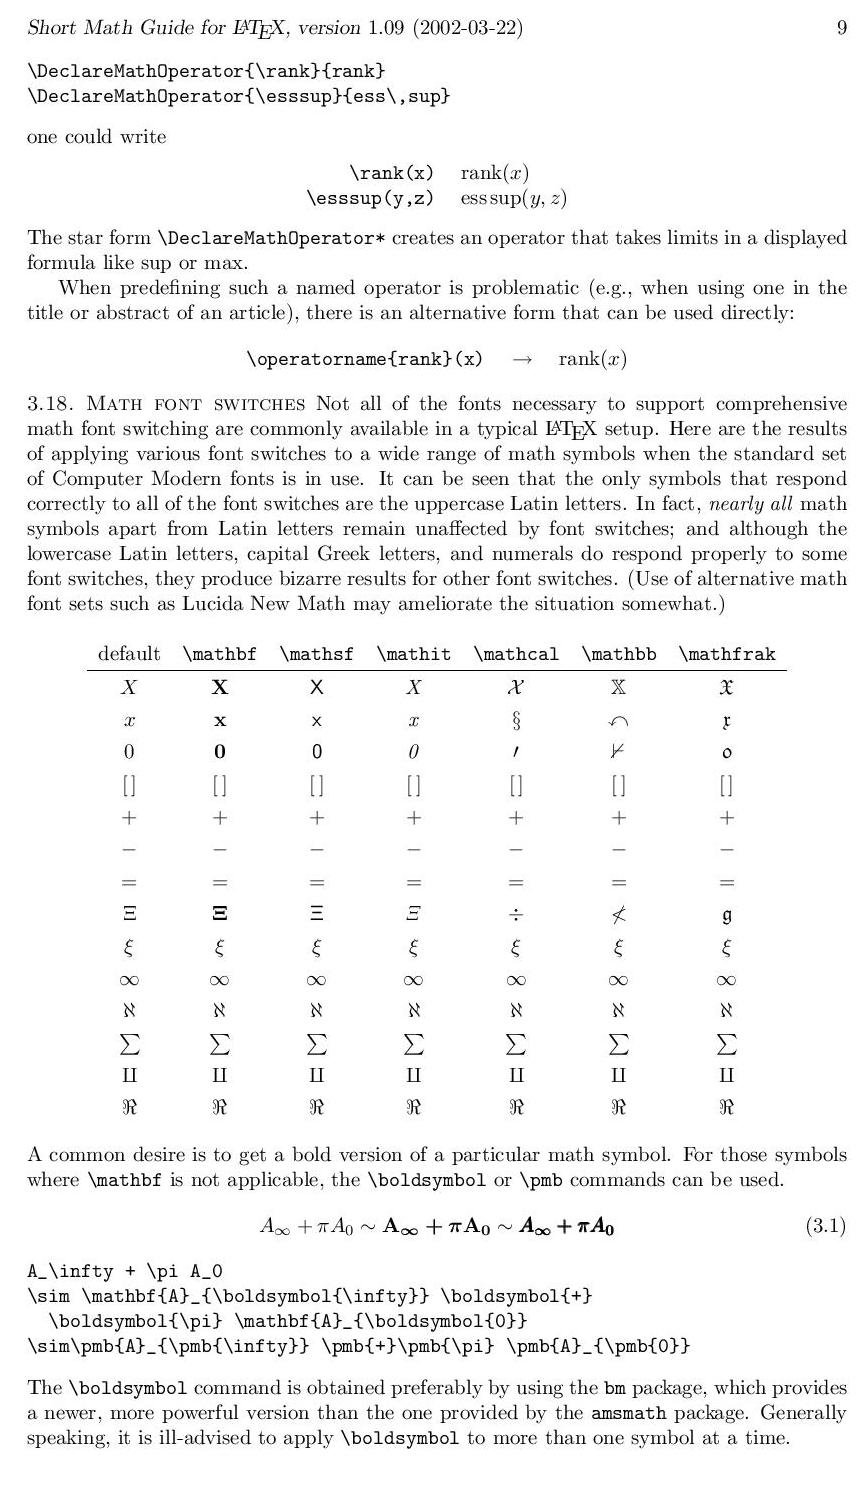 Computer inquisitive latex part 1 some mathematical symbols please feel free to share document which contain more symbols related to mathematics biocorpaavc